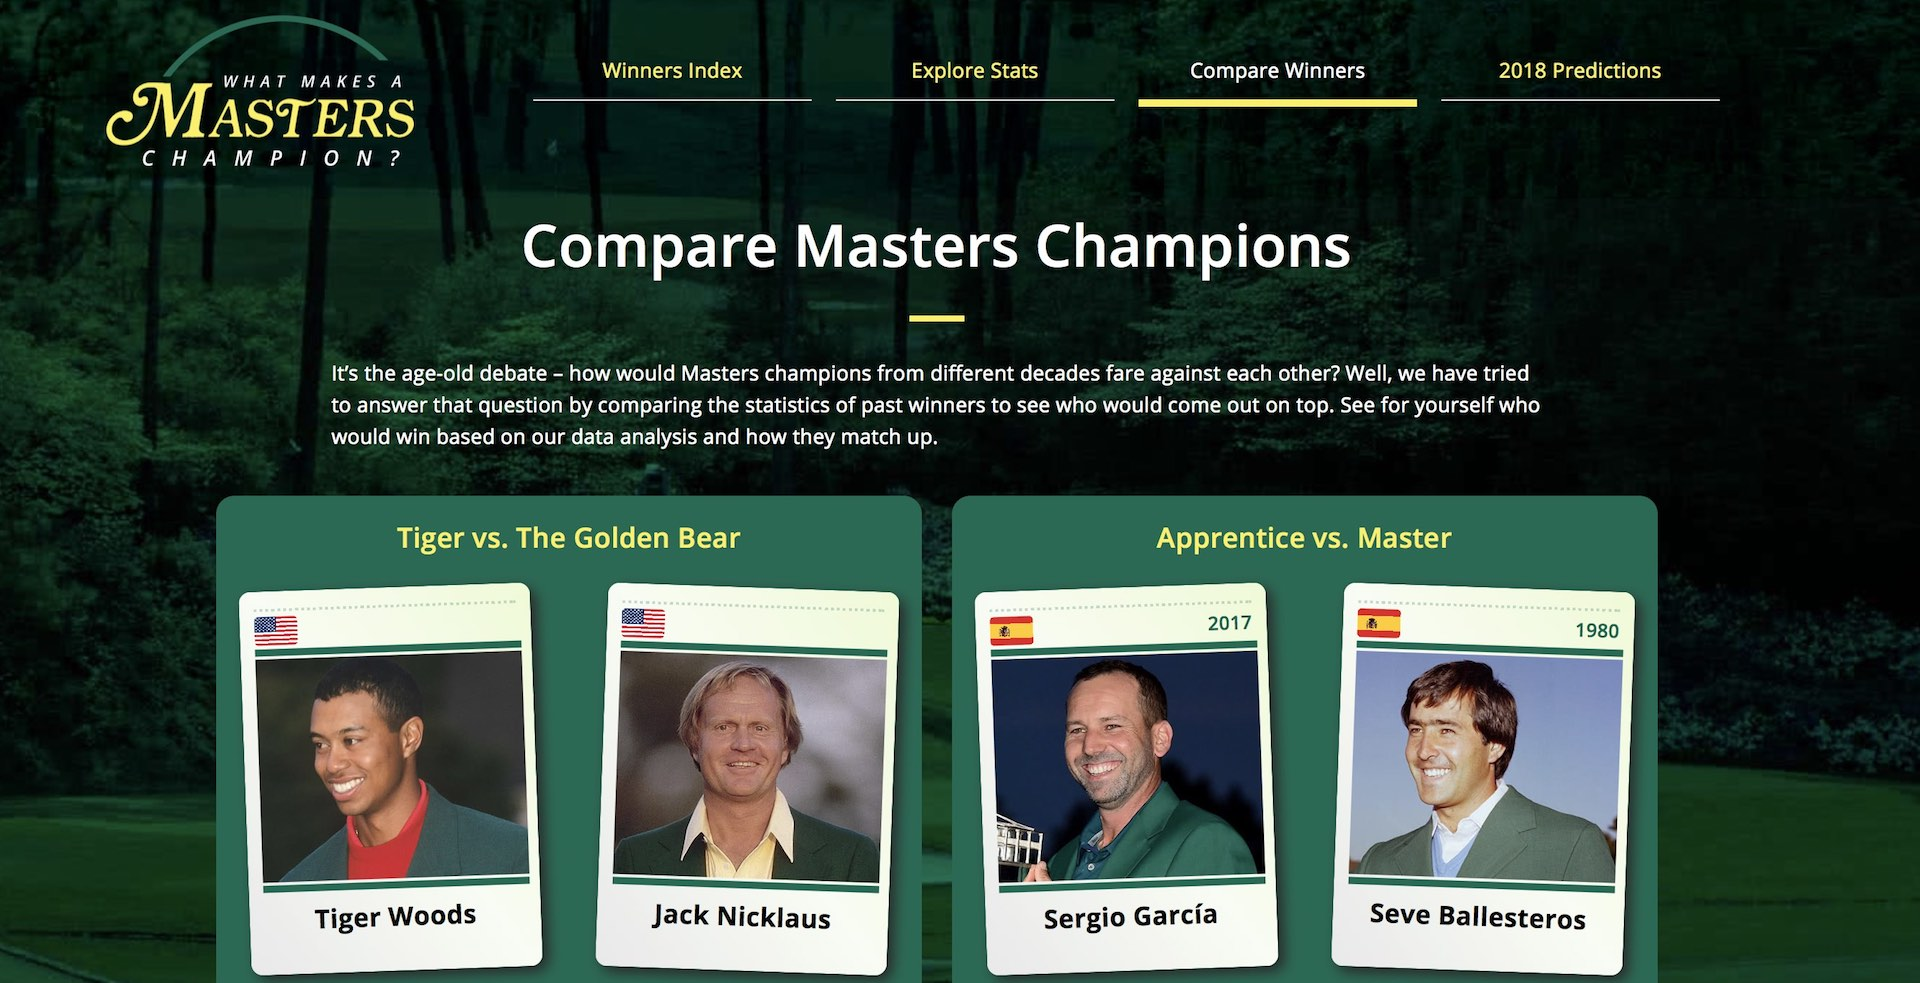 What makes a Masters Champion?